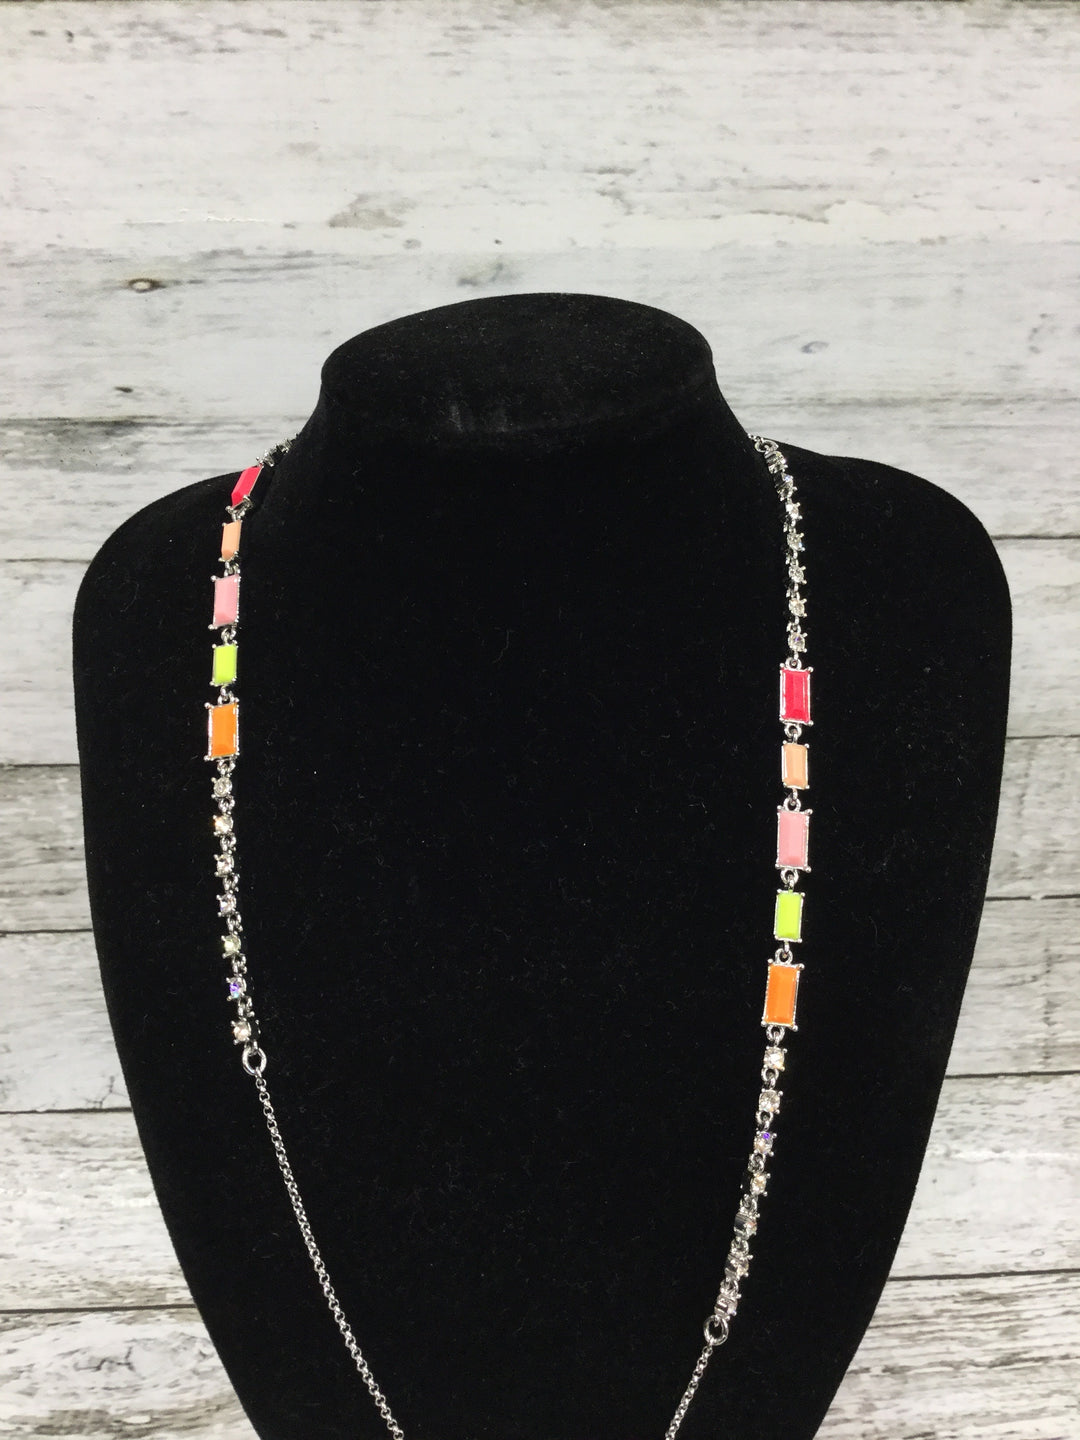 Primary Photo - BRAND: ANN TAYLOR O , STYLE: NECKLACE , COLOR: MULTI , SKU: 127-4559-9429, , ORANGE, PINK, LIME GREEN, AND PEACH BEADS. IN GREAT CONDITION.